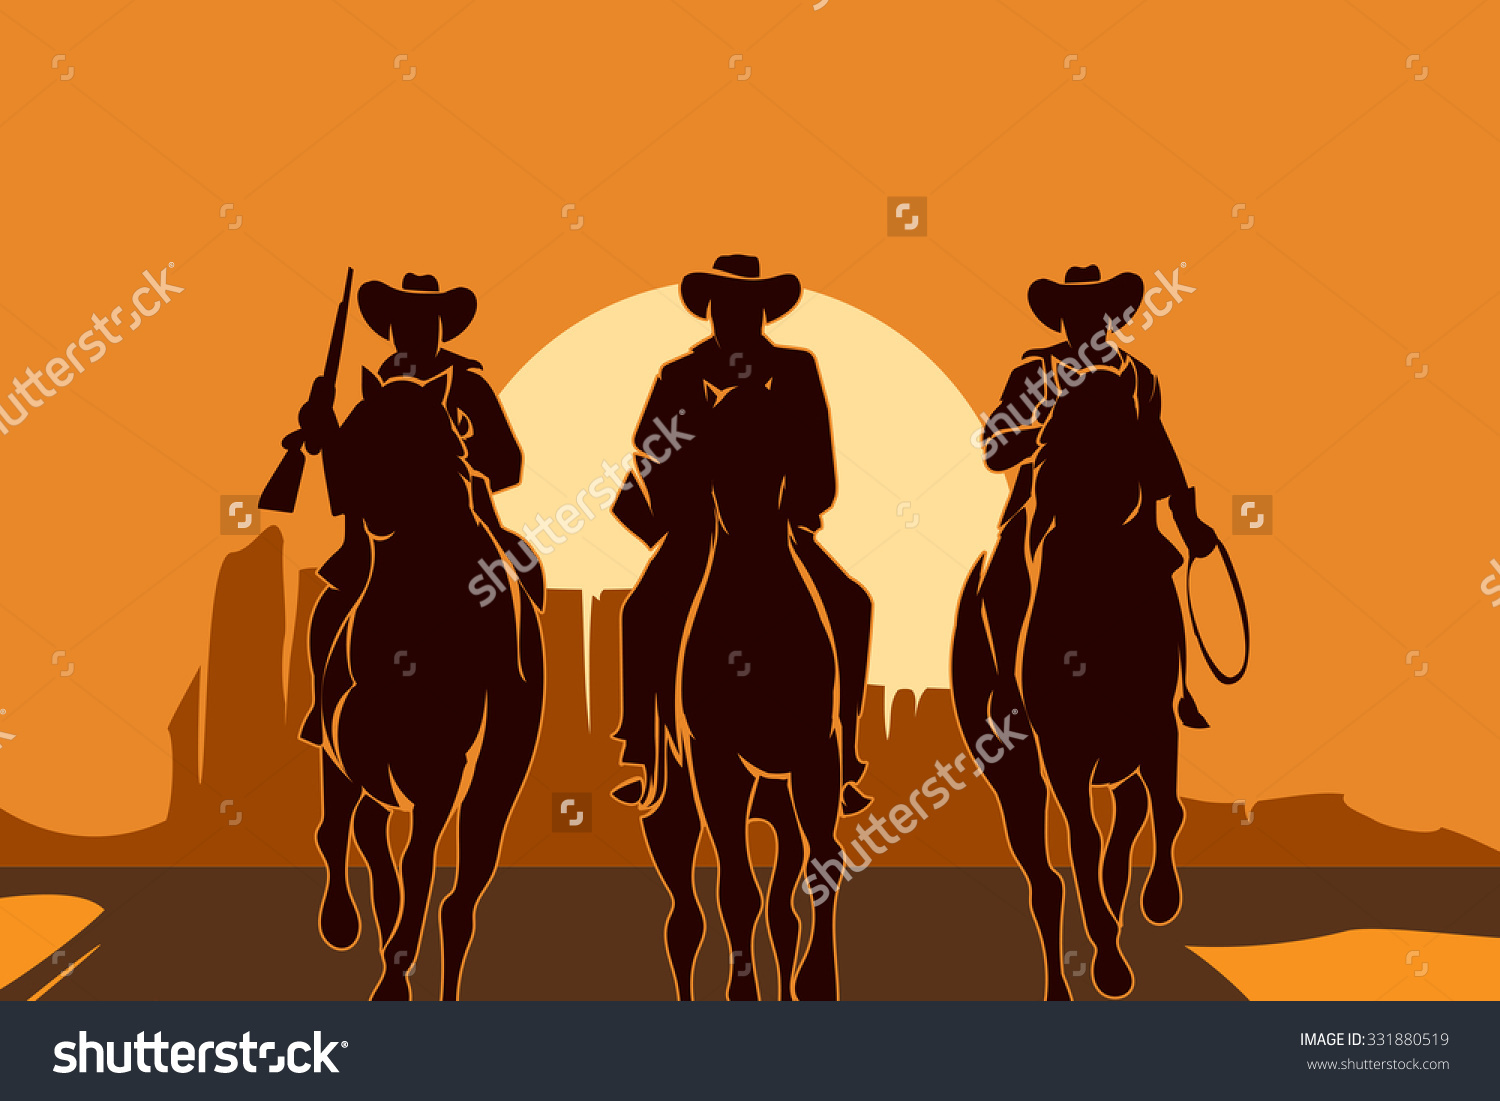 Cowboys Riding Horses Desert Freedom Man Stock Vector 331880519.